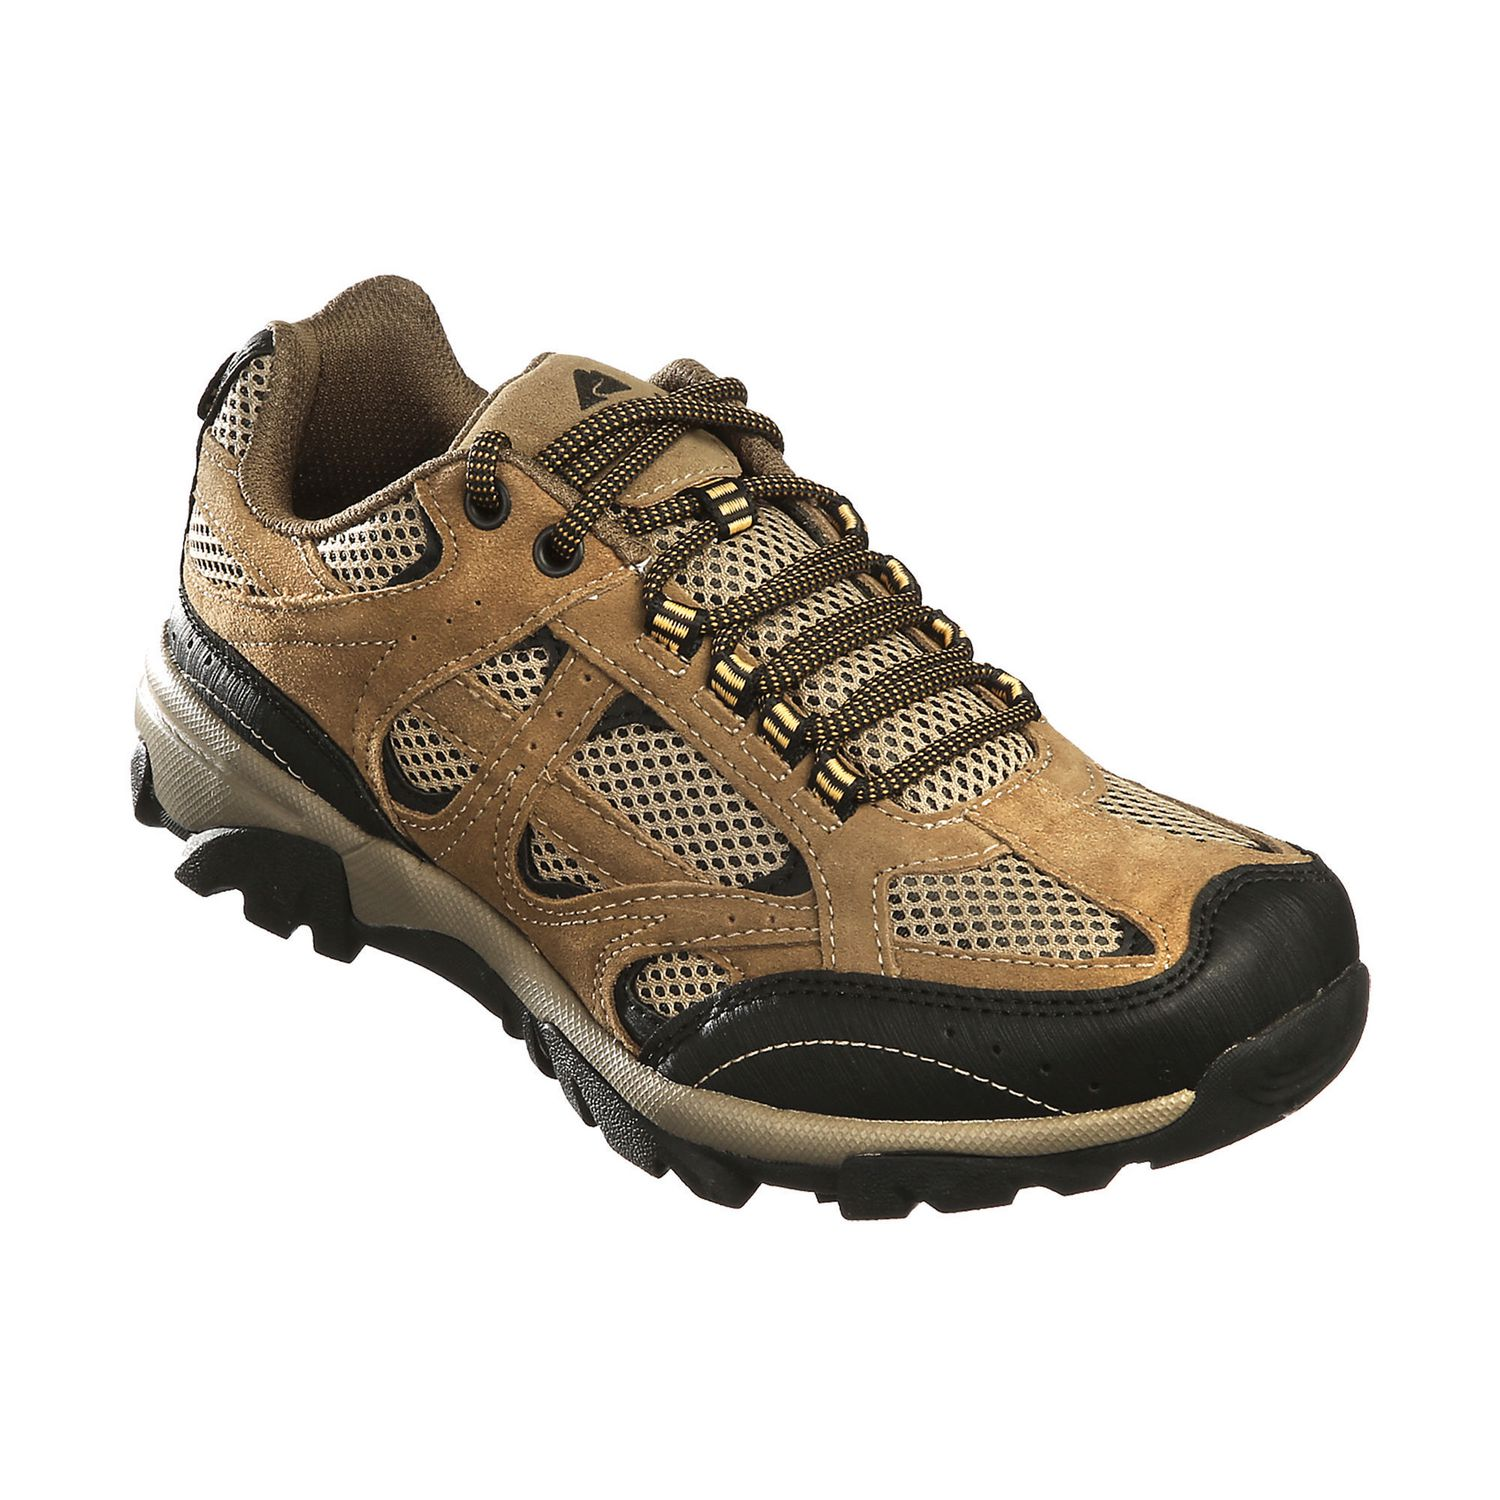 eaa29ba29a6a Ozark Trail Men s Trail Low Hiker - image 1 of 3 zoomed image